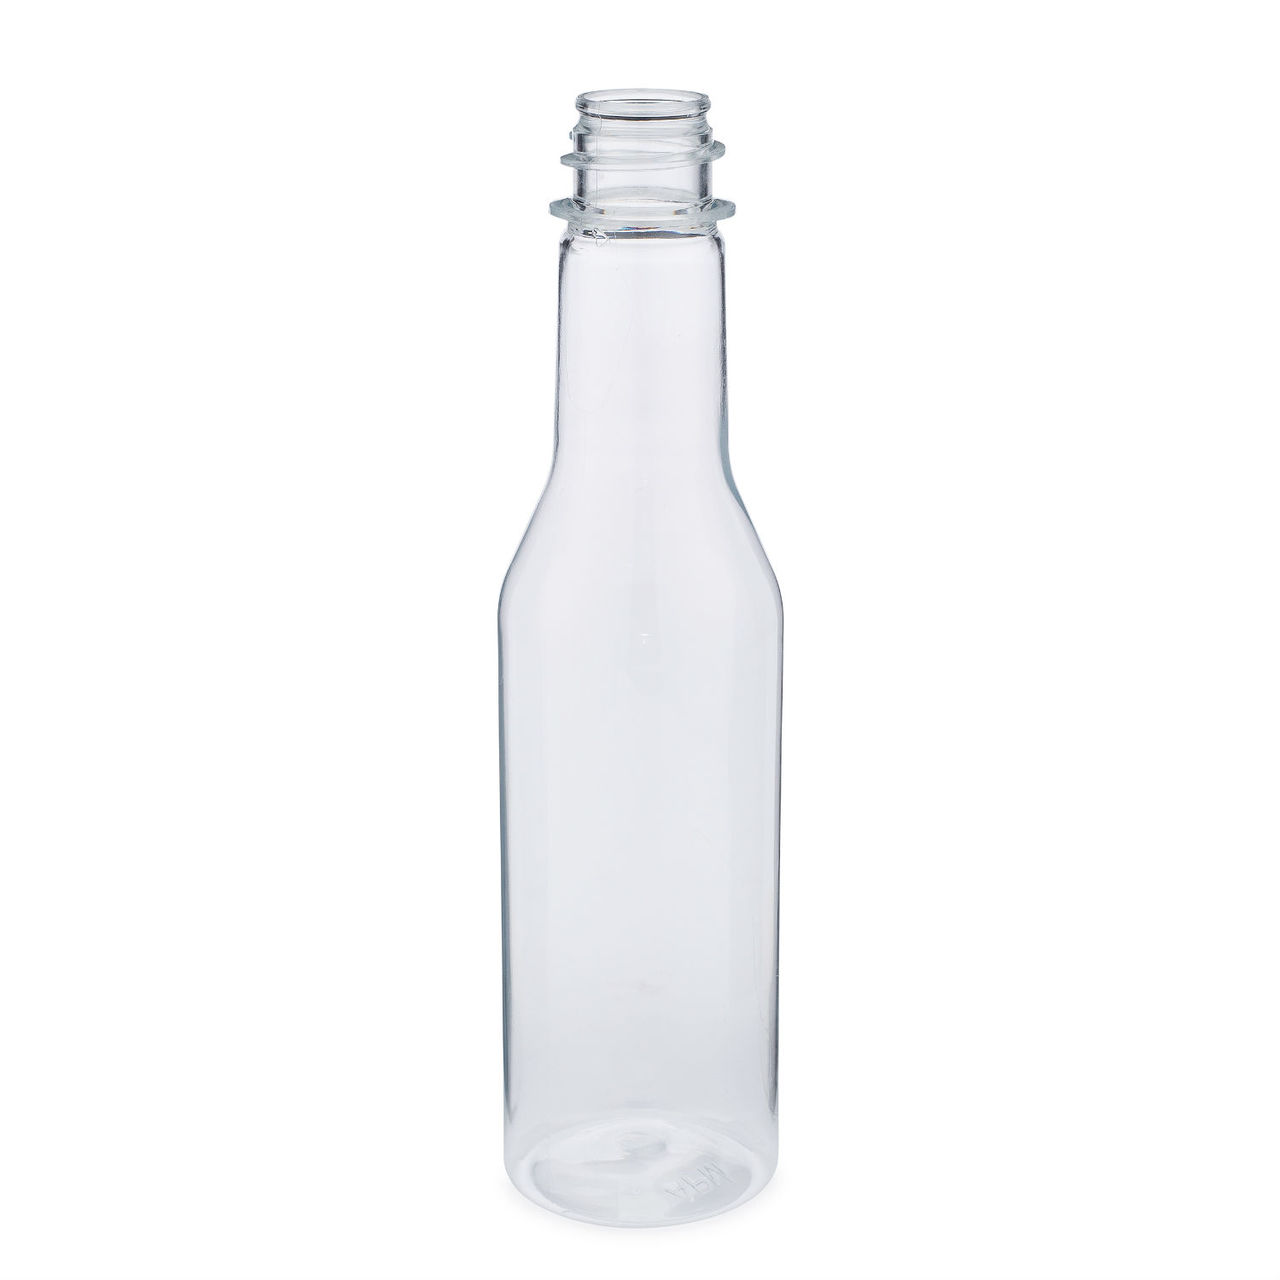 5 oz Clear PET Plastic Hot Sauce Bottles (Cap Not Included) - 3492B01-B